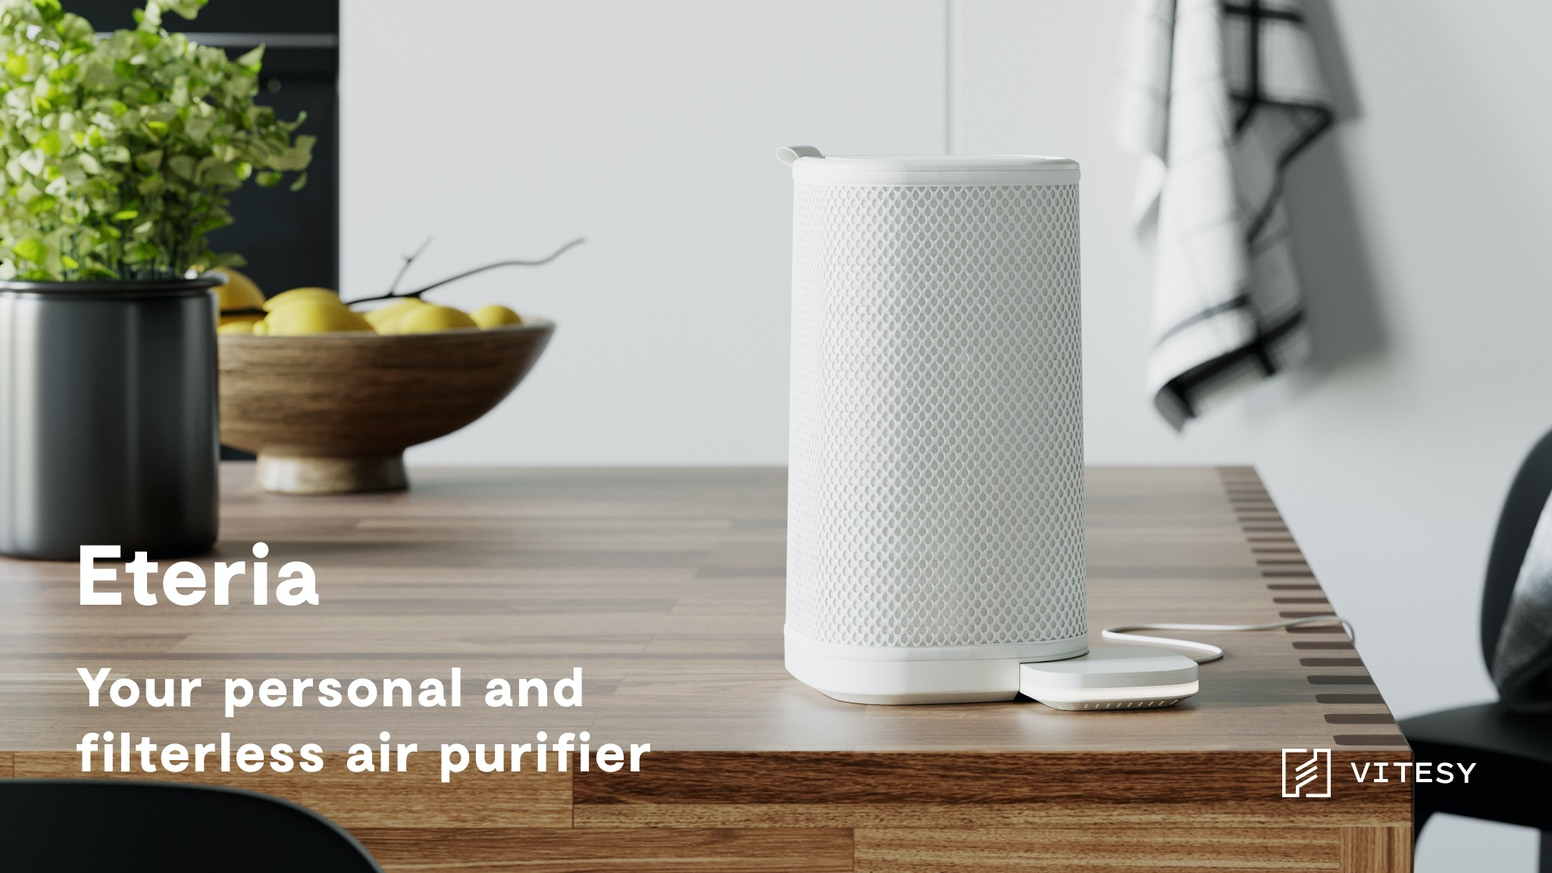 Finally redefining the concept of air purifiers thanks to a diffused purification and monitoring system - with powerful nanomaterials.